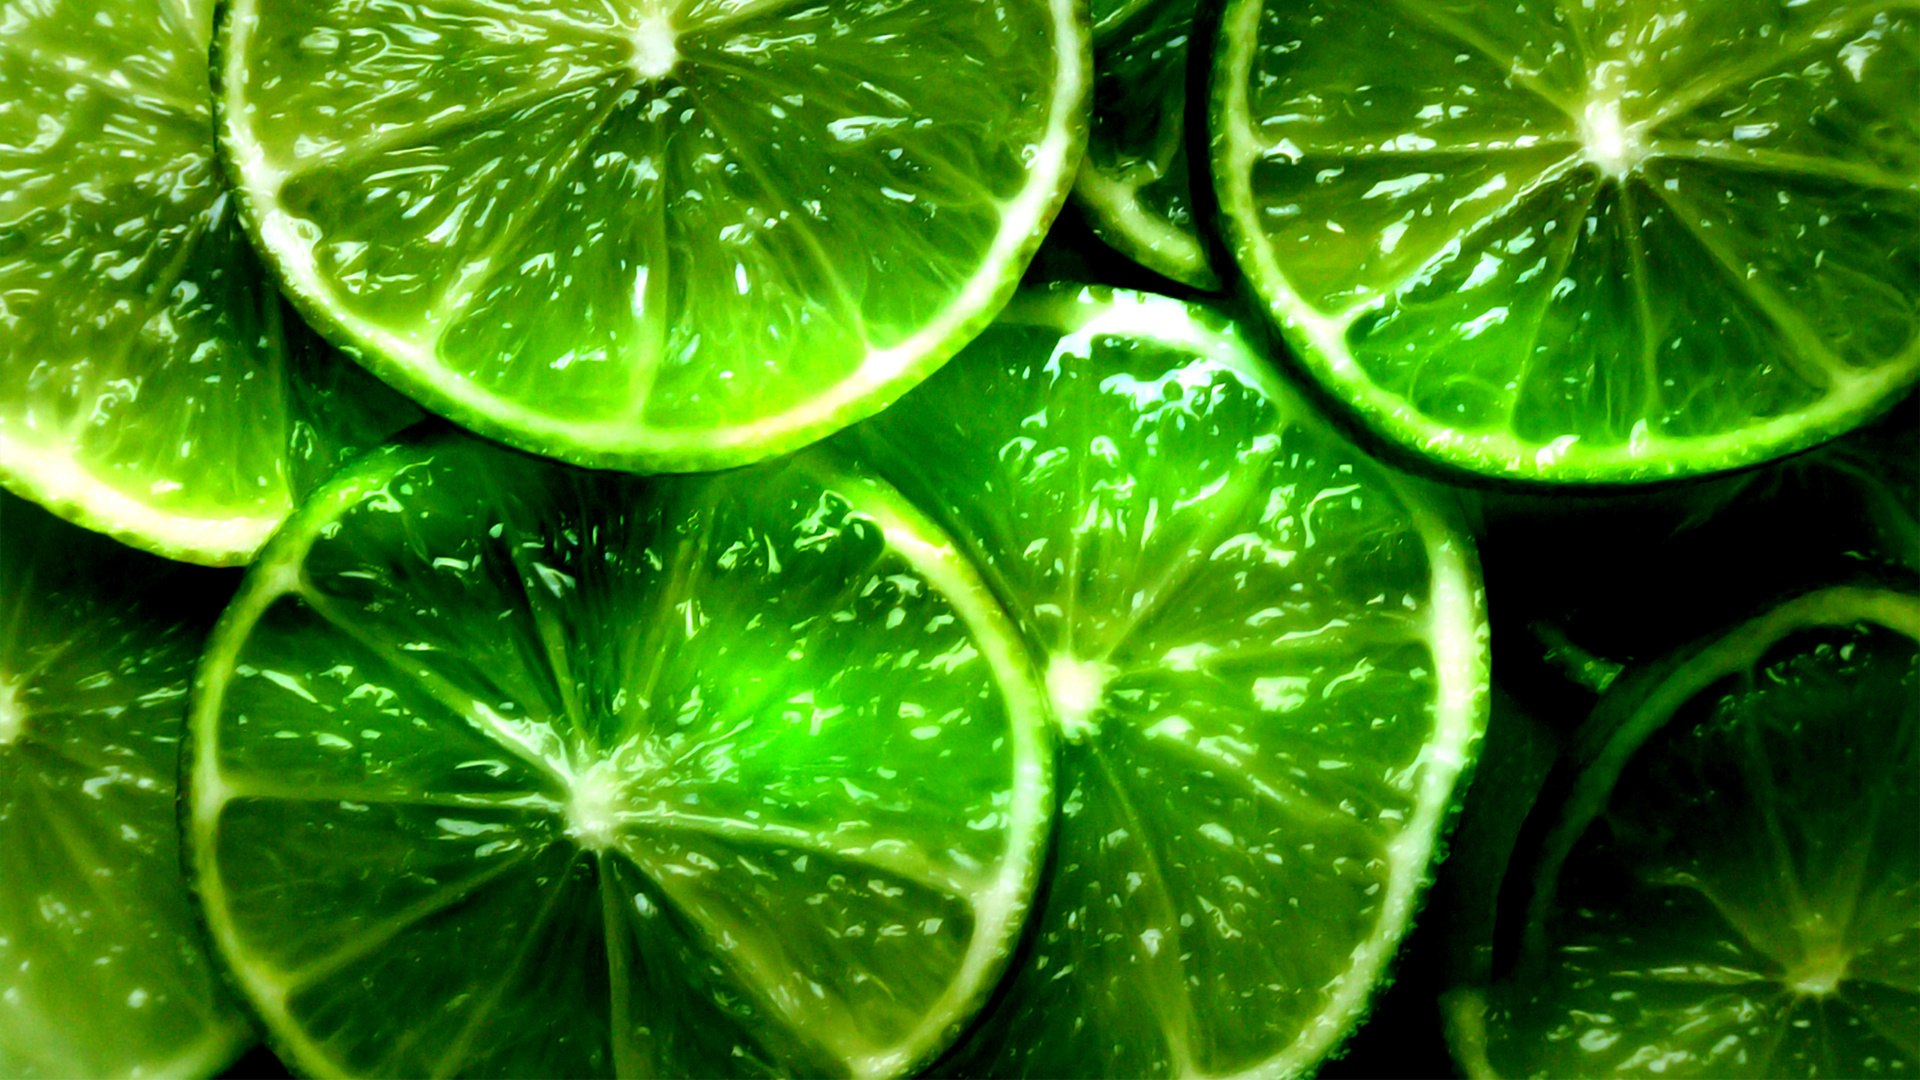 Download Wallpaper Lime Citrus Green Free Desktop in 1920x1080px